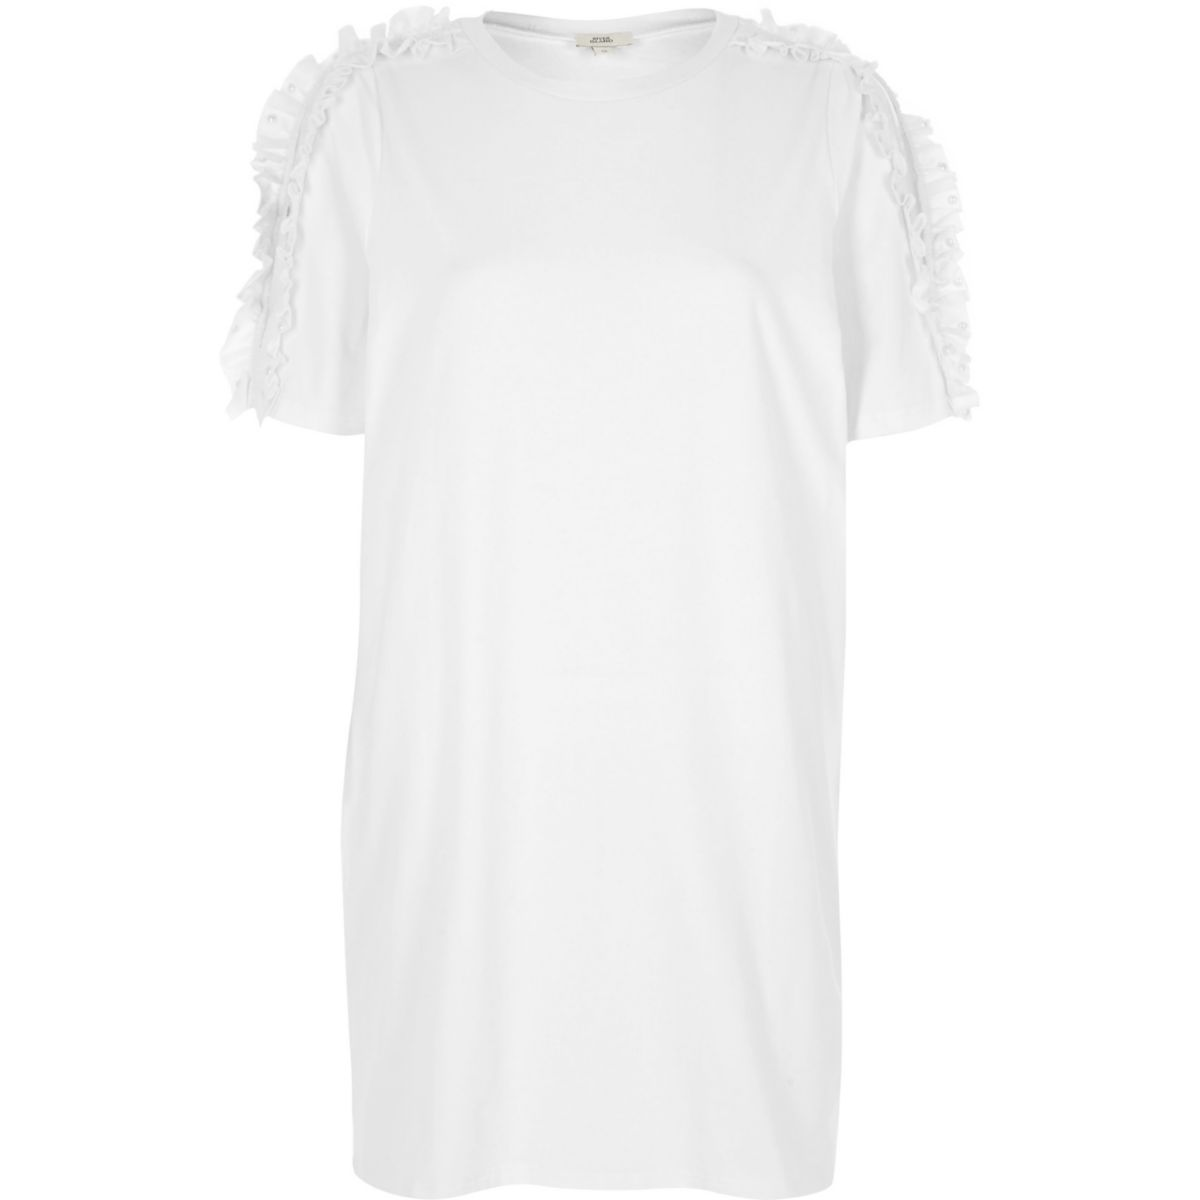 White frill cold shoulder oversized T-shirt